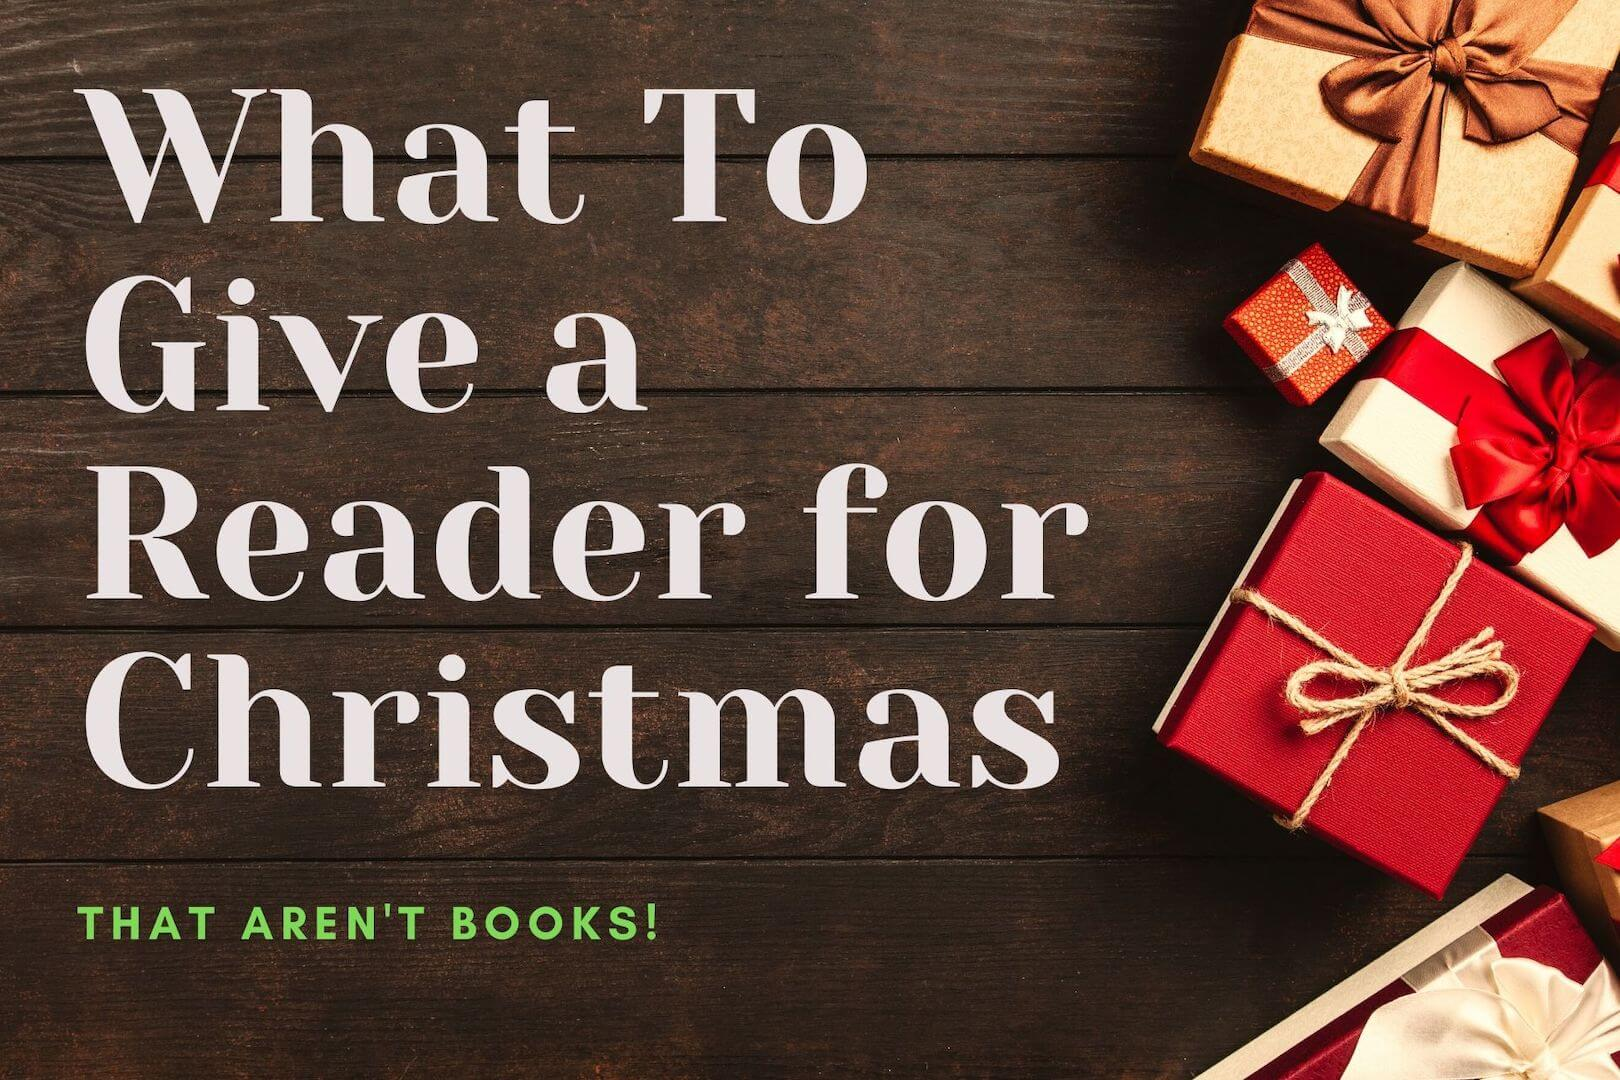 What to give a reader for christmas - book club chat